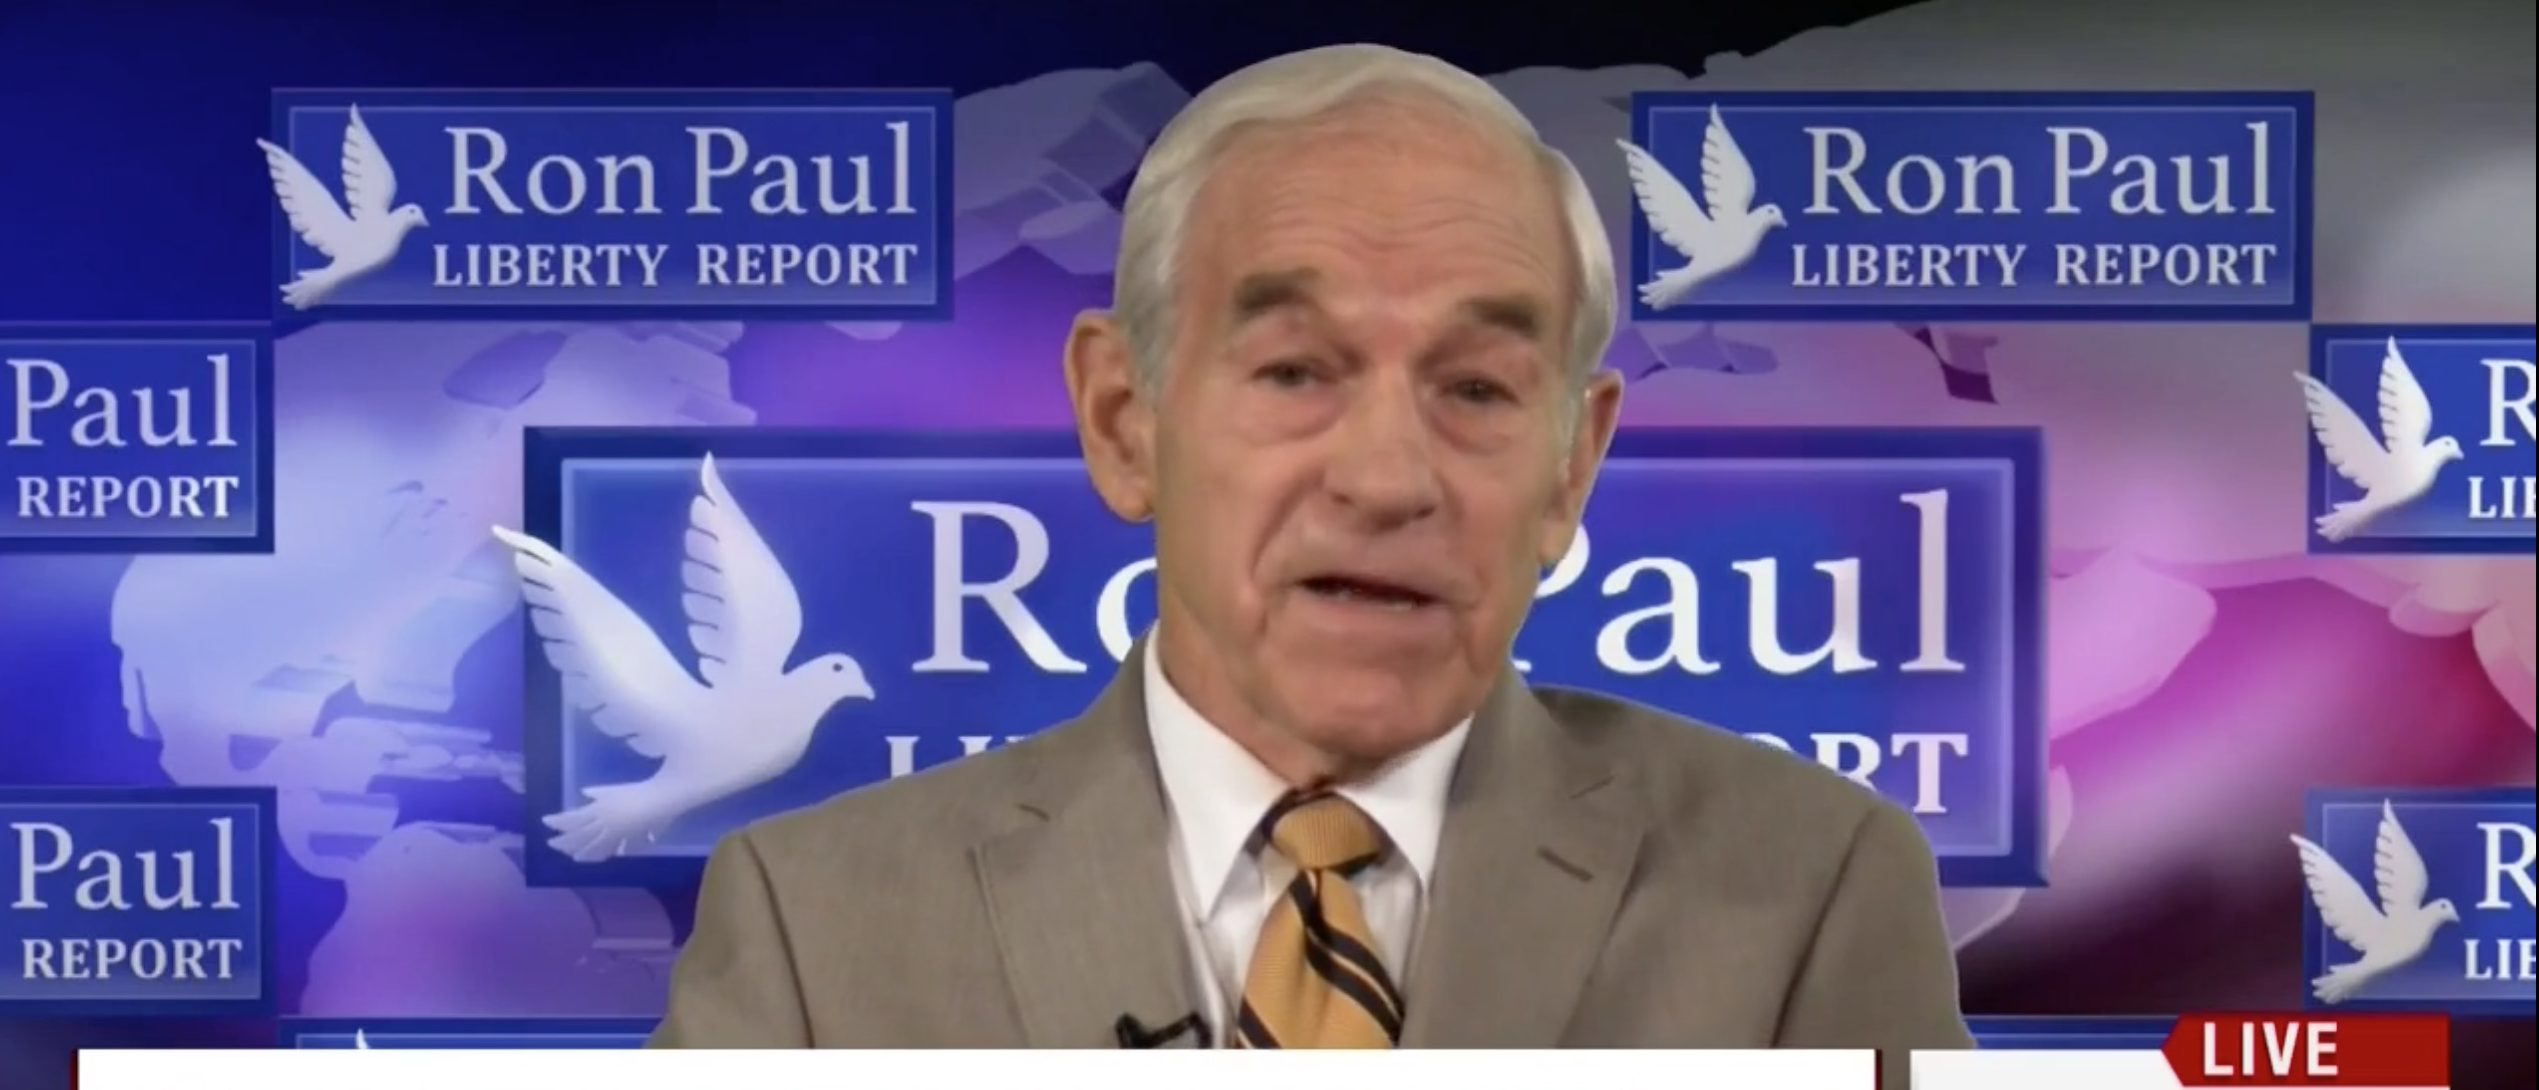 Ron Paul, Screen Grab MSNBC, 6-6-2016